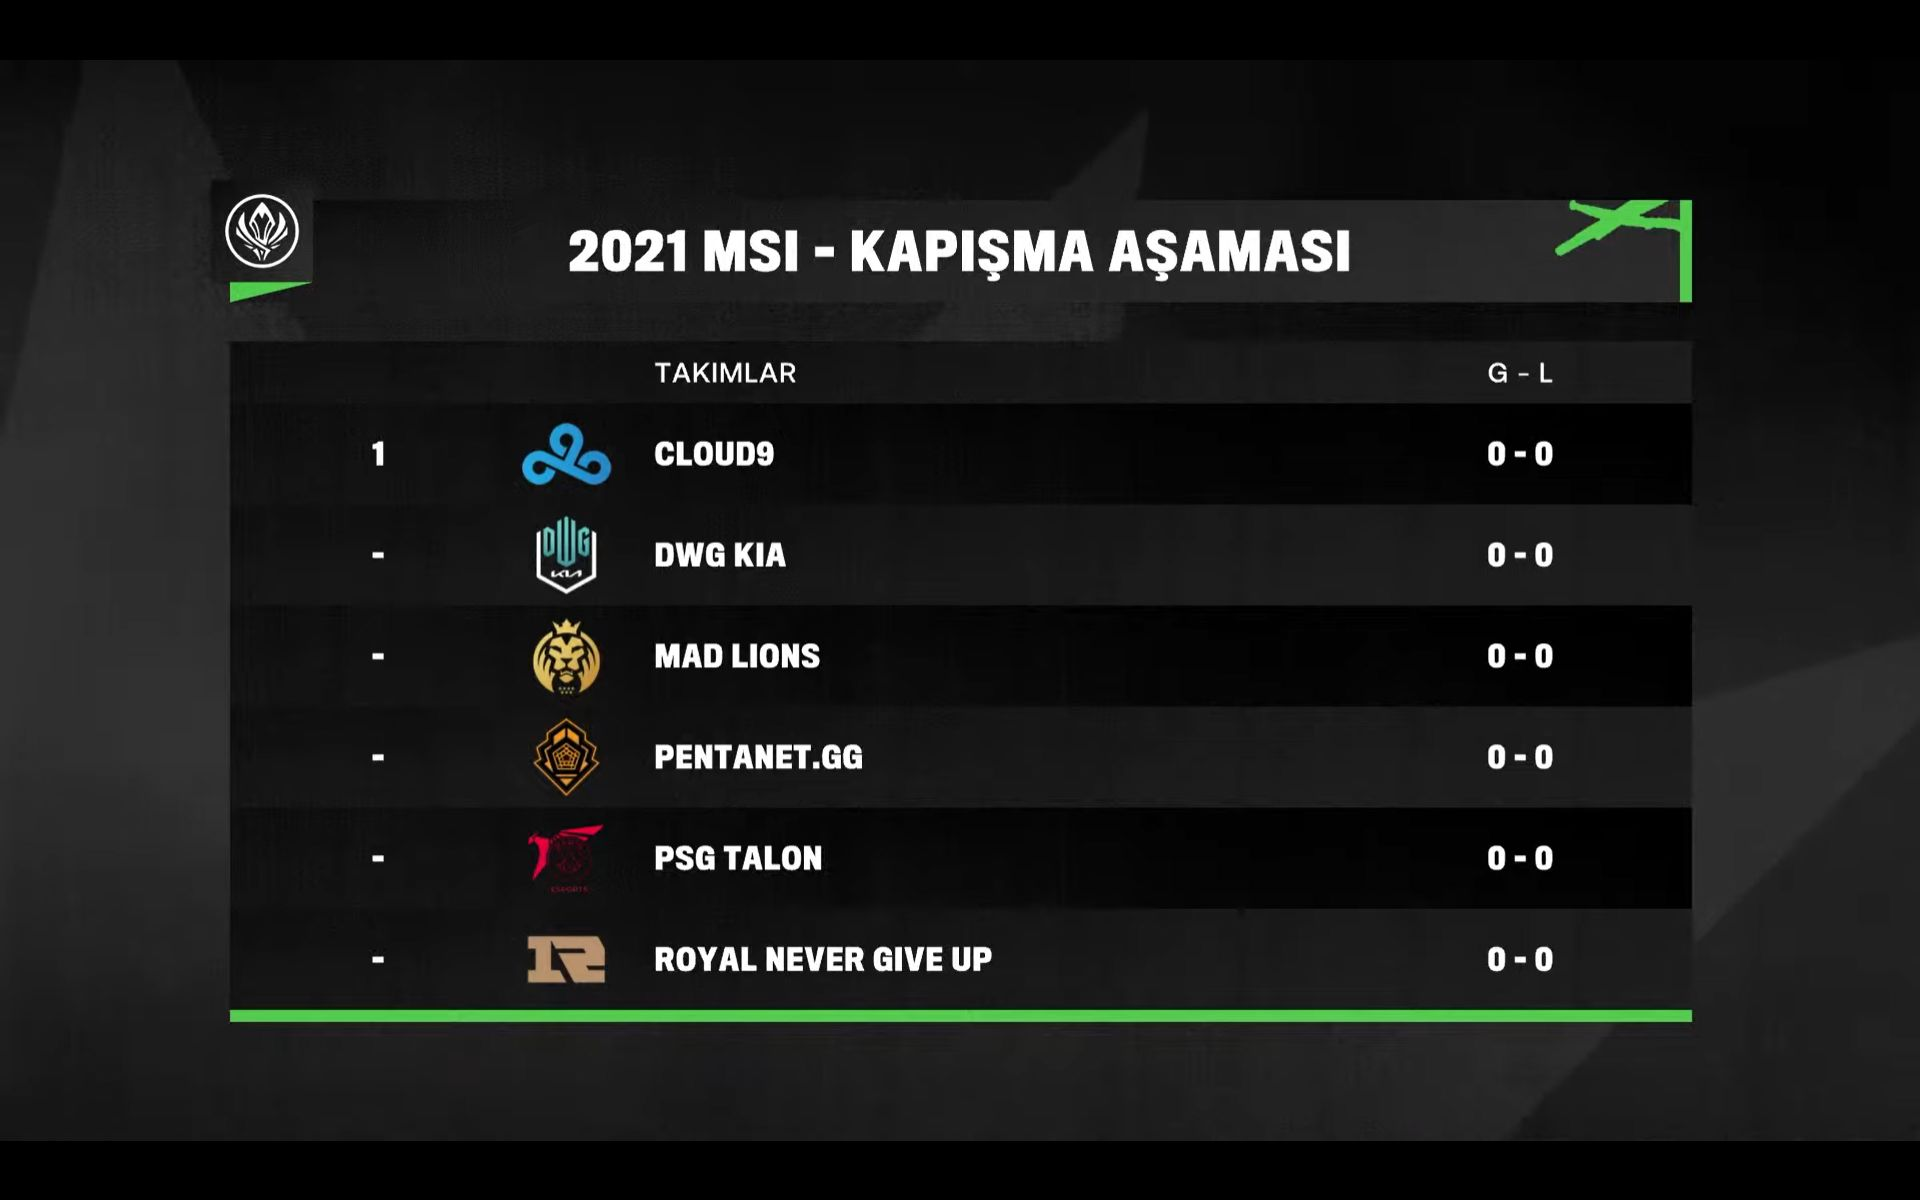 MSI 2021 group stage completed